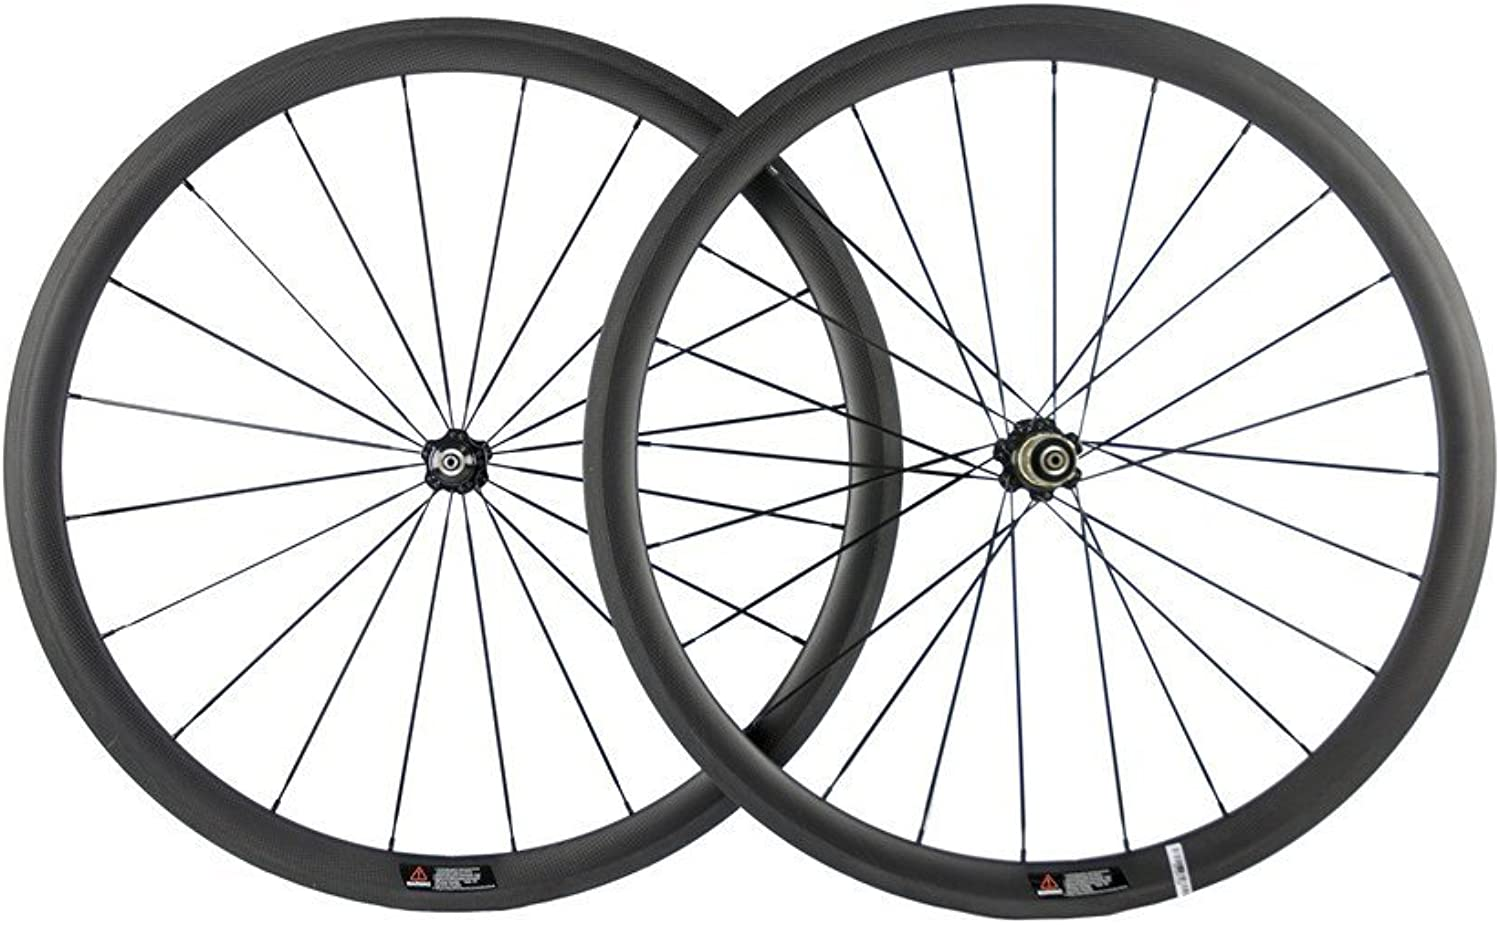 Sunrise Bike 38mm Clincher Carbon Wheel 23mm Width Carbon Wheelset with Matte Finish